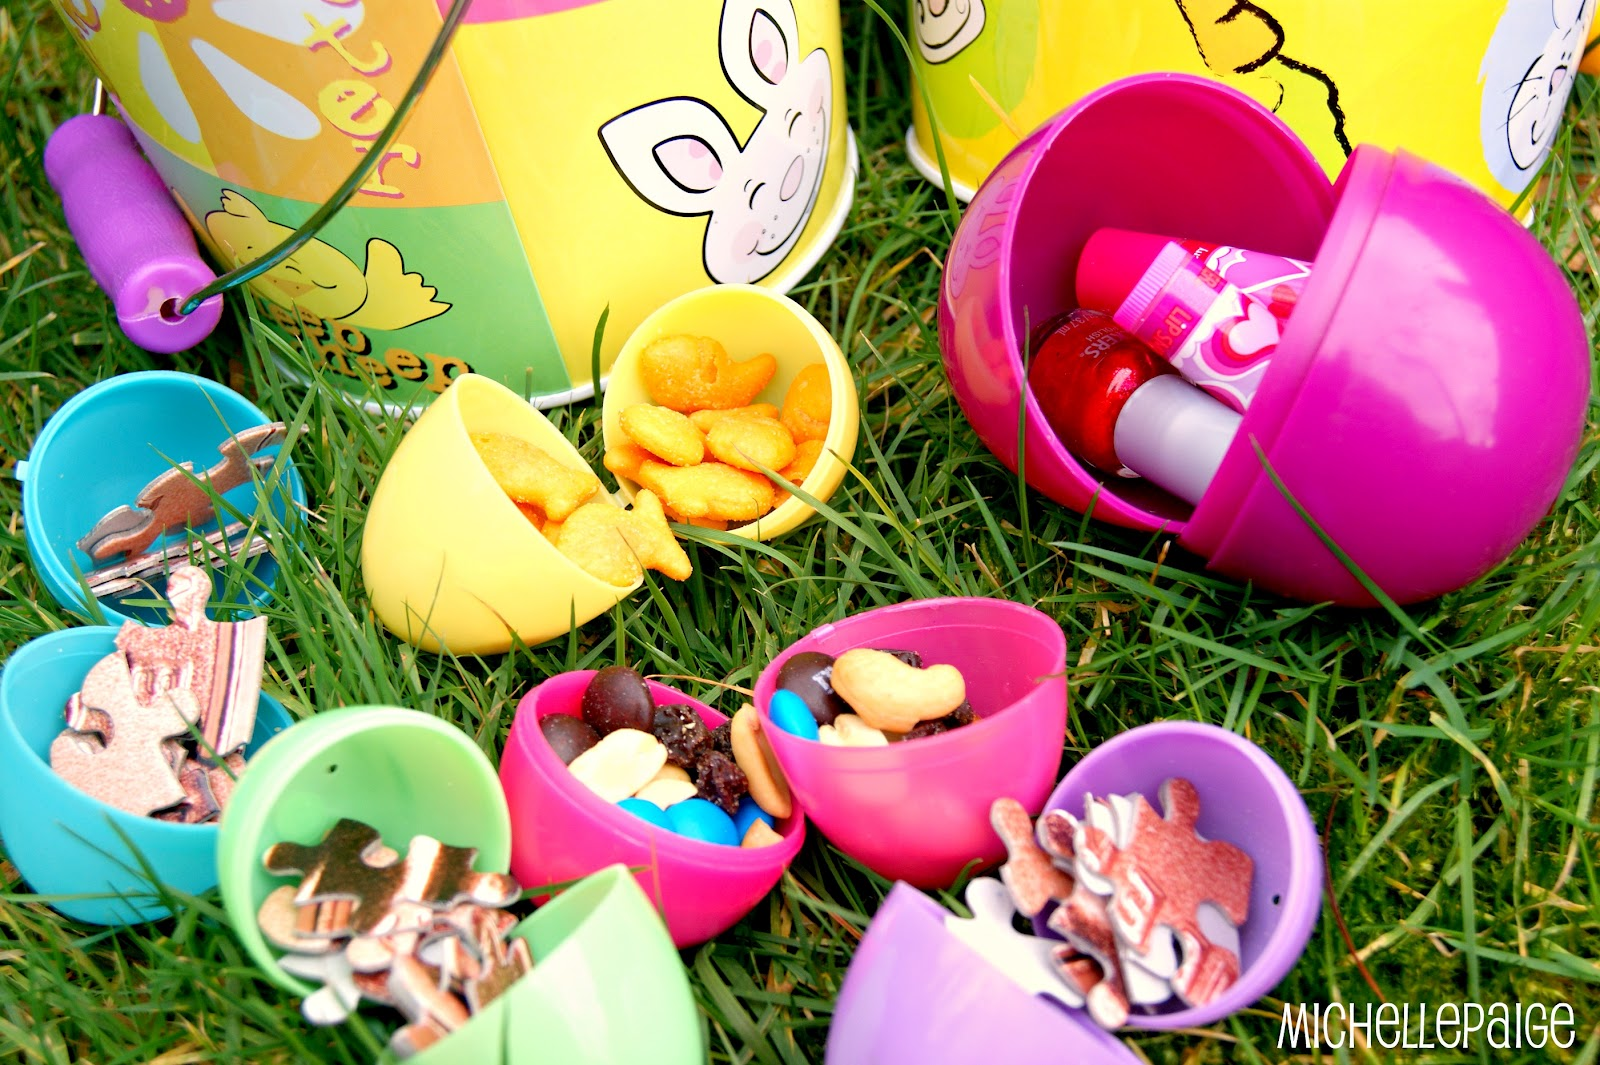 How To Organize A Community Easter Egg Hunt